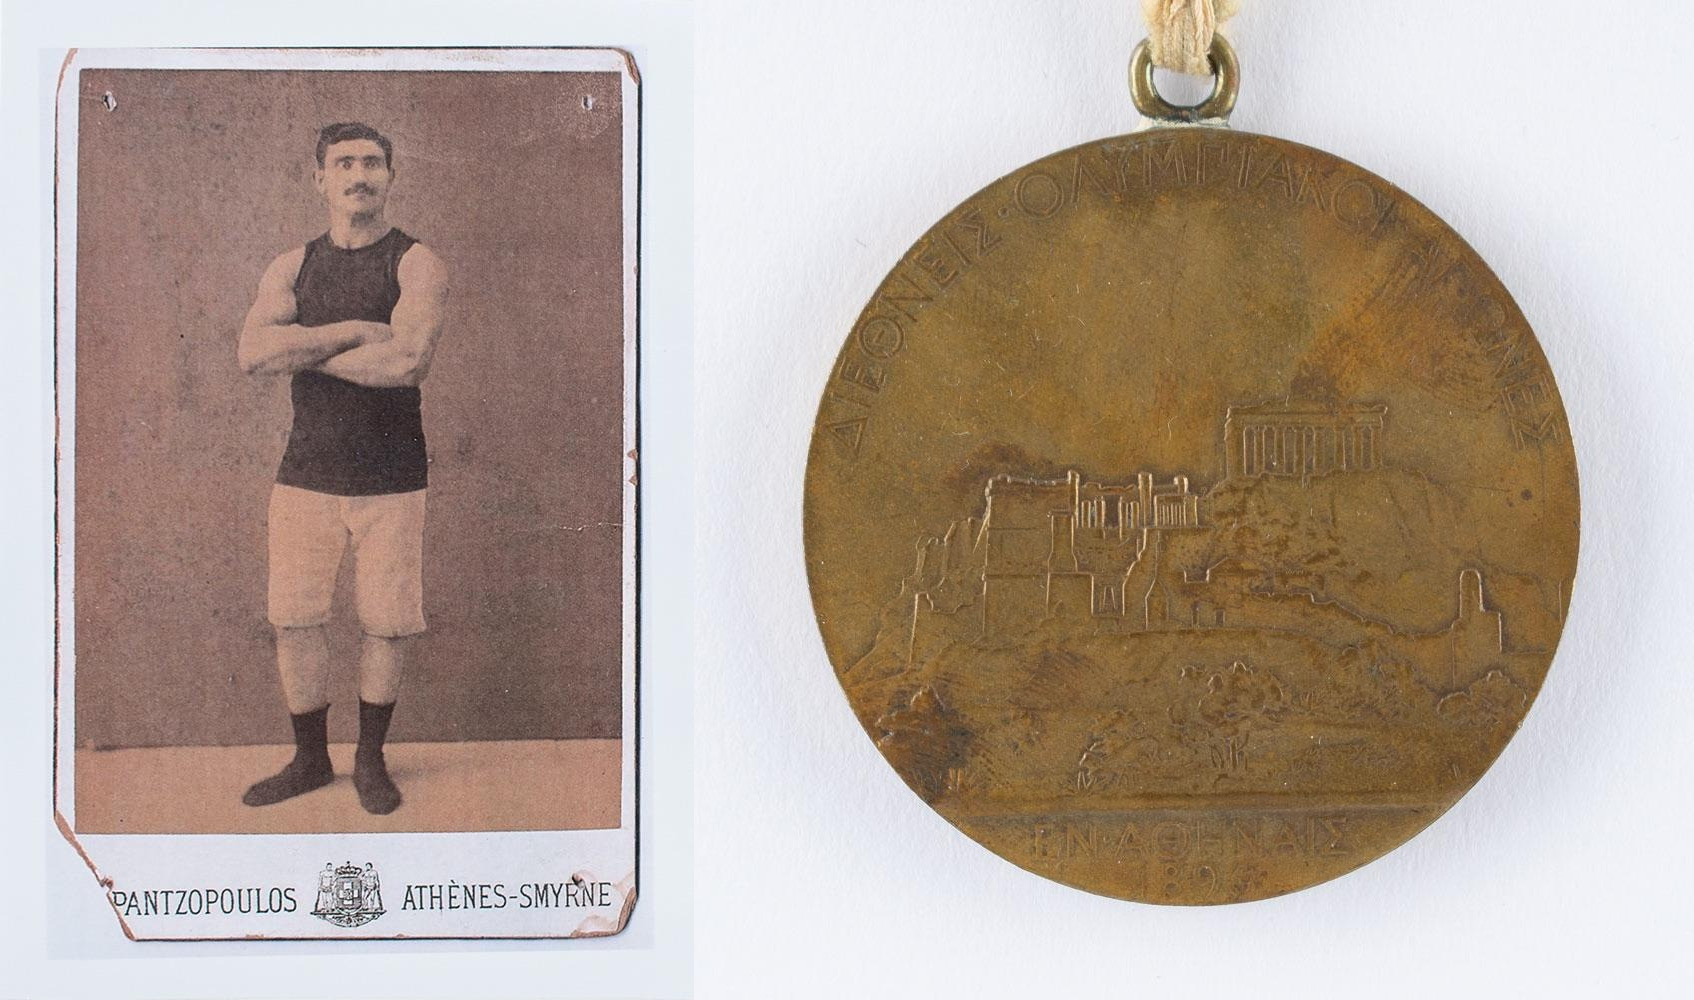 Greece's Georgios Tsitas won the Olympic medal for finishing second in the Greco-Roman wrestling event in a competition that took days to complete ©RR Auction